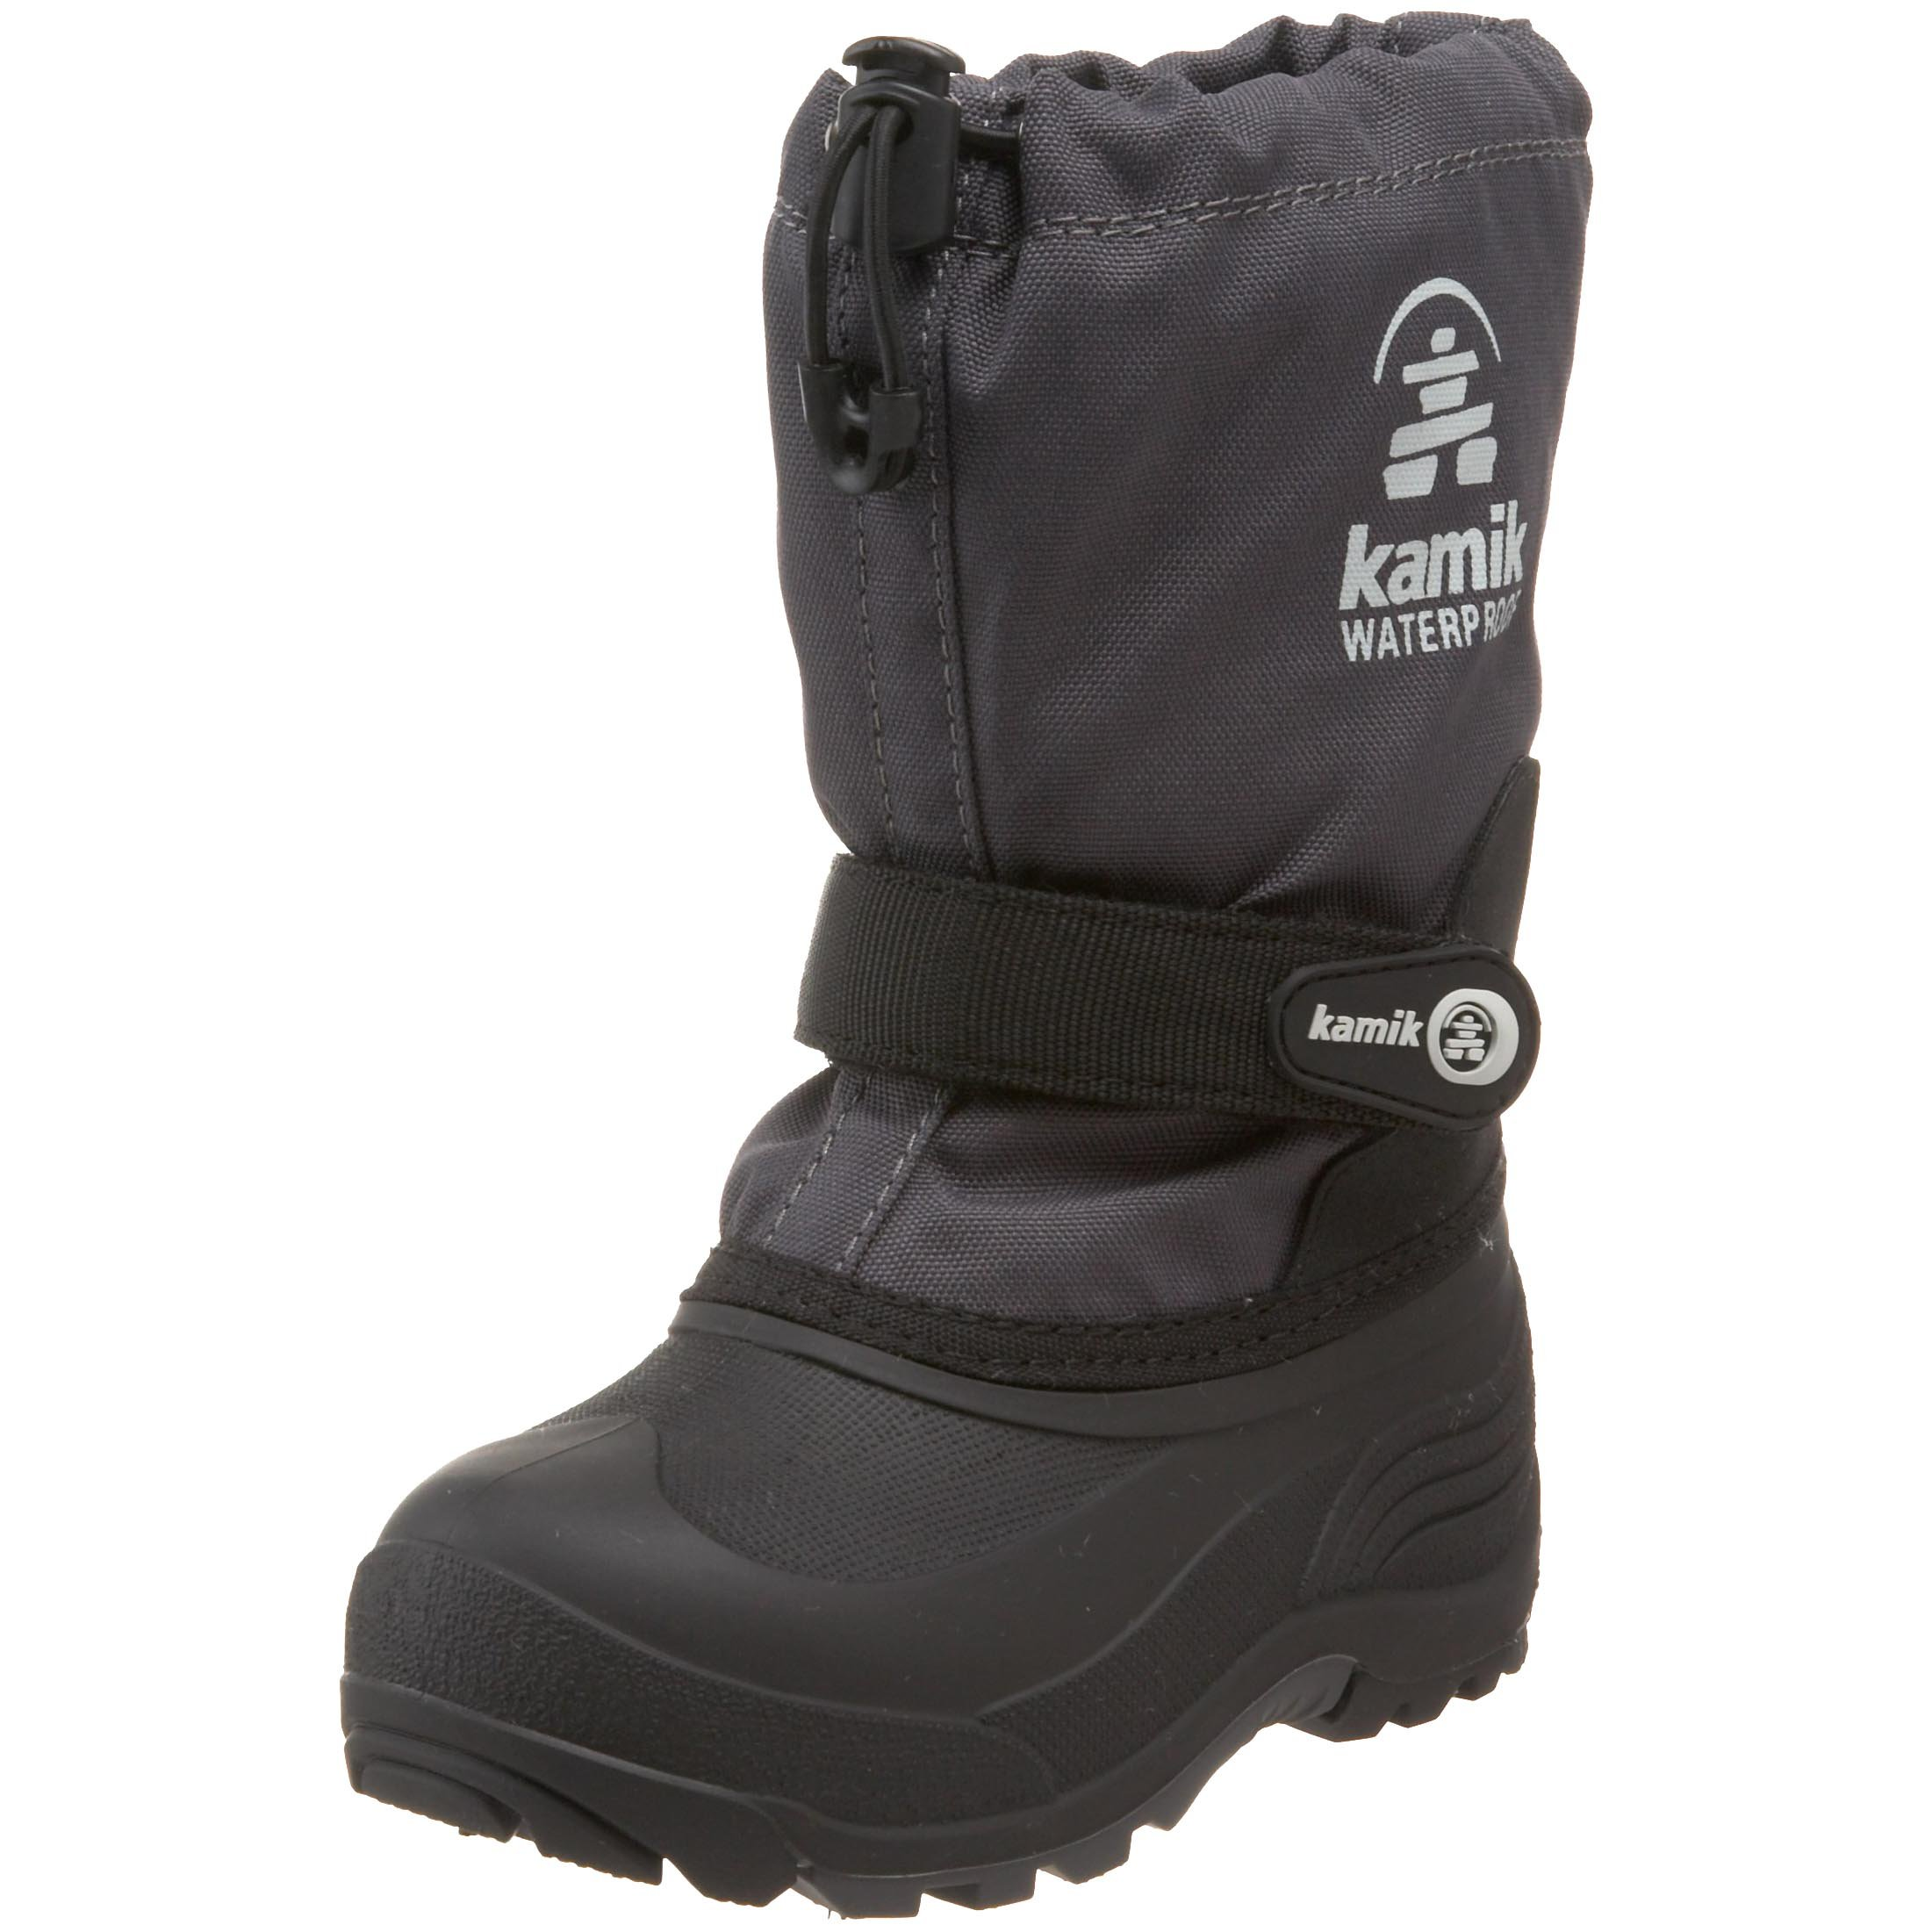 Kamik Waterbug Wide Cold Weather Boot (Toddler/Little Kid/Big Kid),Charcoal,8 W US Toddler